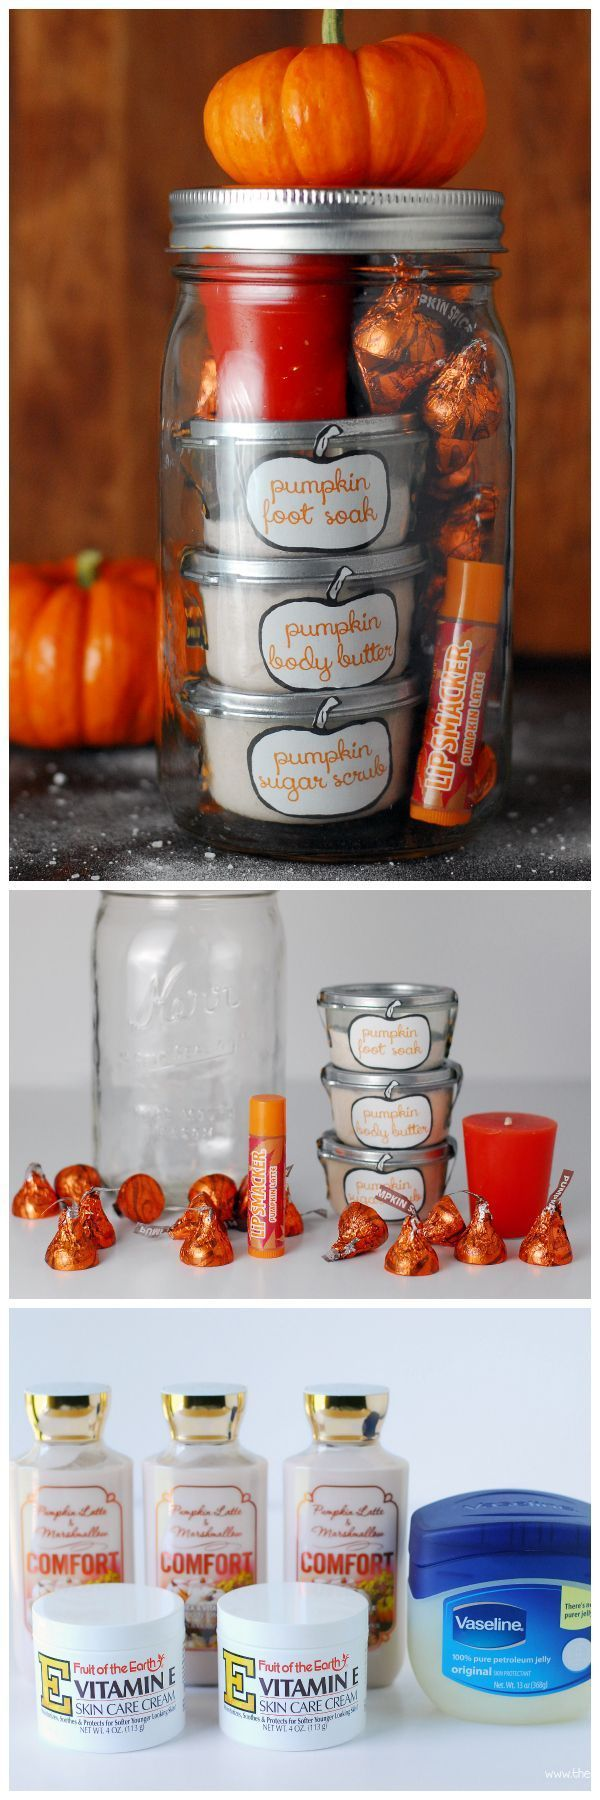 This Pumpkin Pamering Jar is perfect for autumn. It is a large mason jar gift filled with delicious scented pumpkin body care products, pumpkin treats and a pumpkin candle. (Diy Candles In Mason Jars)